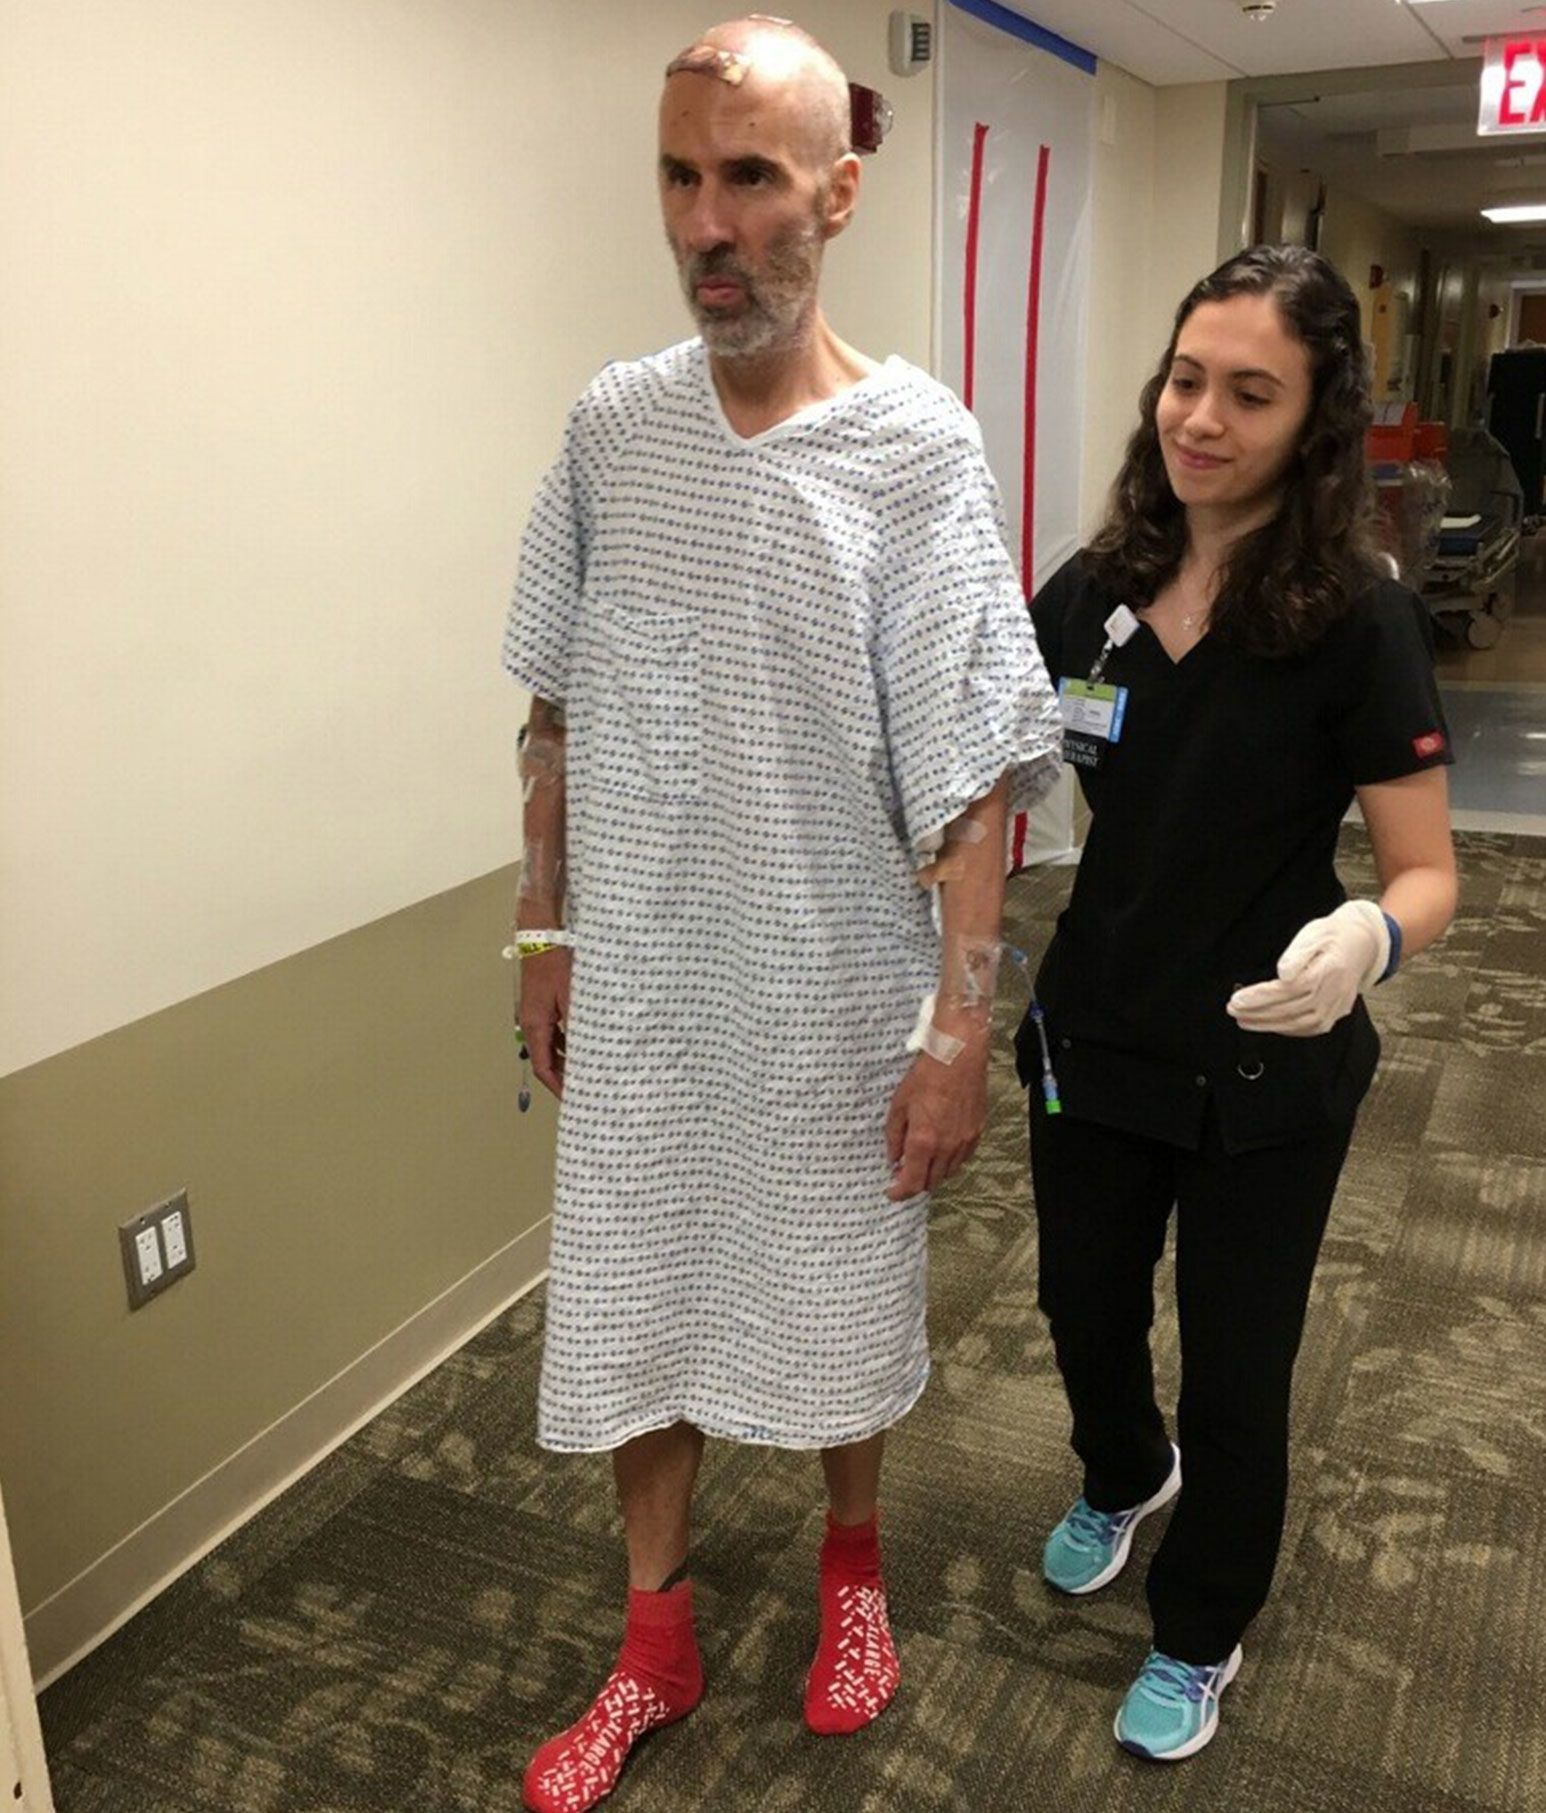 A man in a patient gown and red socks walks along a carpeted hallway. He has bandages on spots on the top of his bald head and along both his arms. A woman in a black nursing outfit walks along side him holding his back up with one arm.